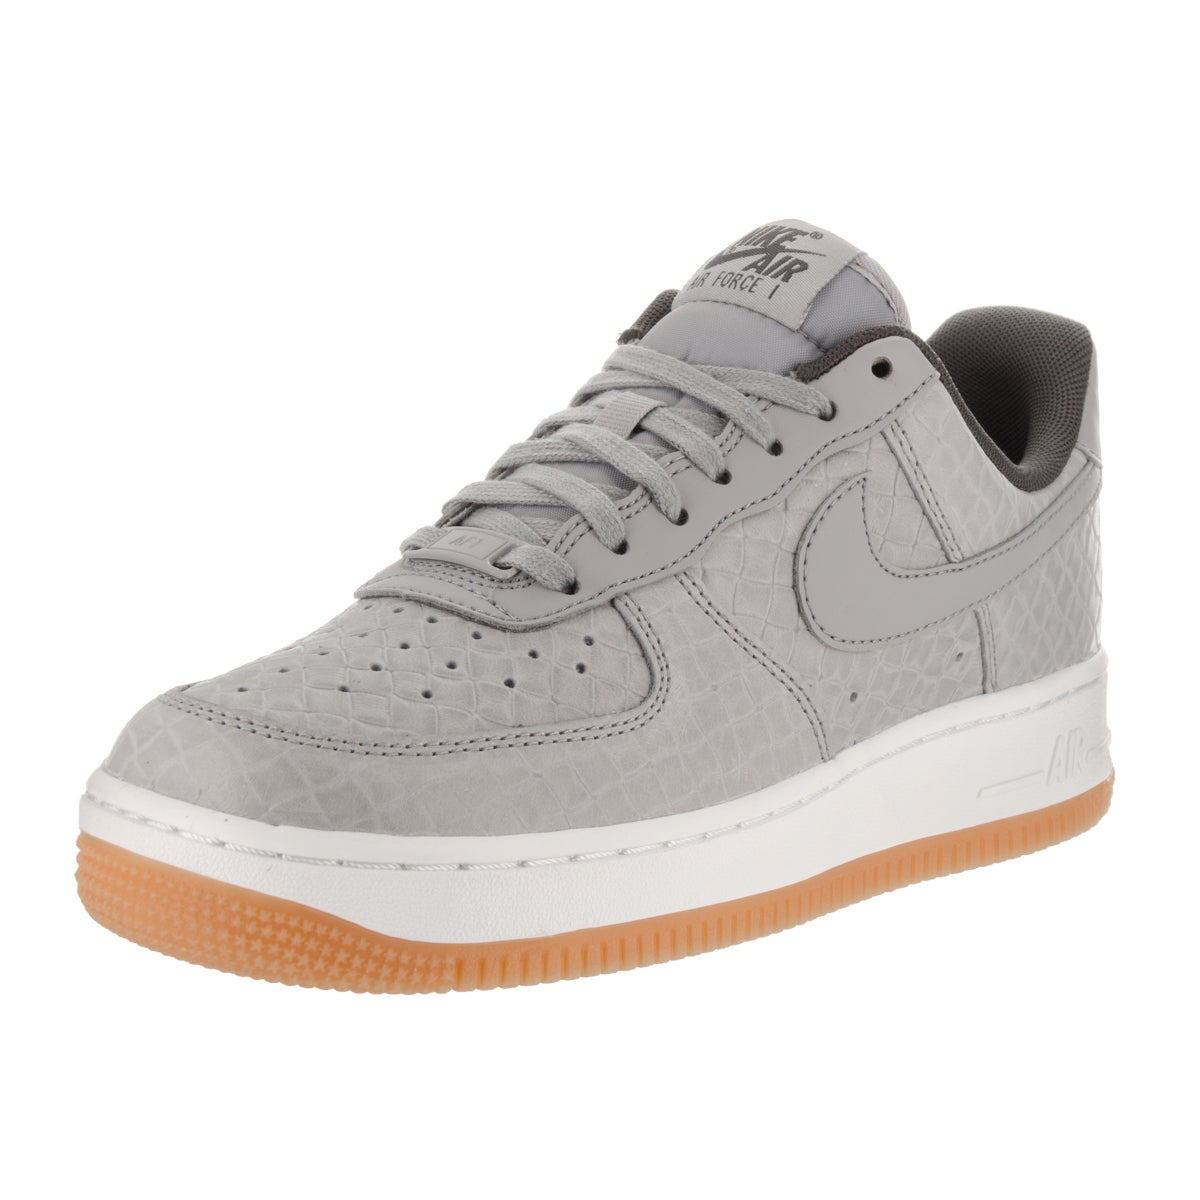 Nike Women's Air Force 1 '07 Prm Grey Leather Basketball ...